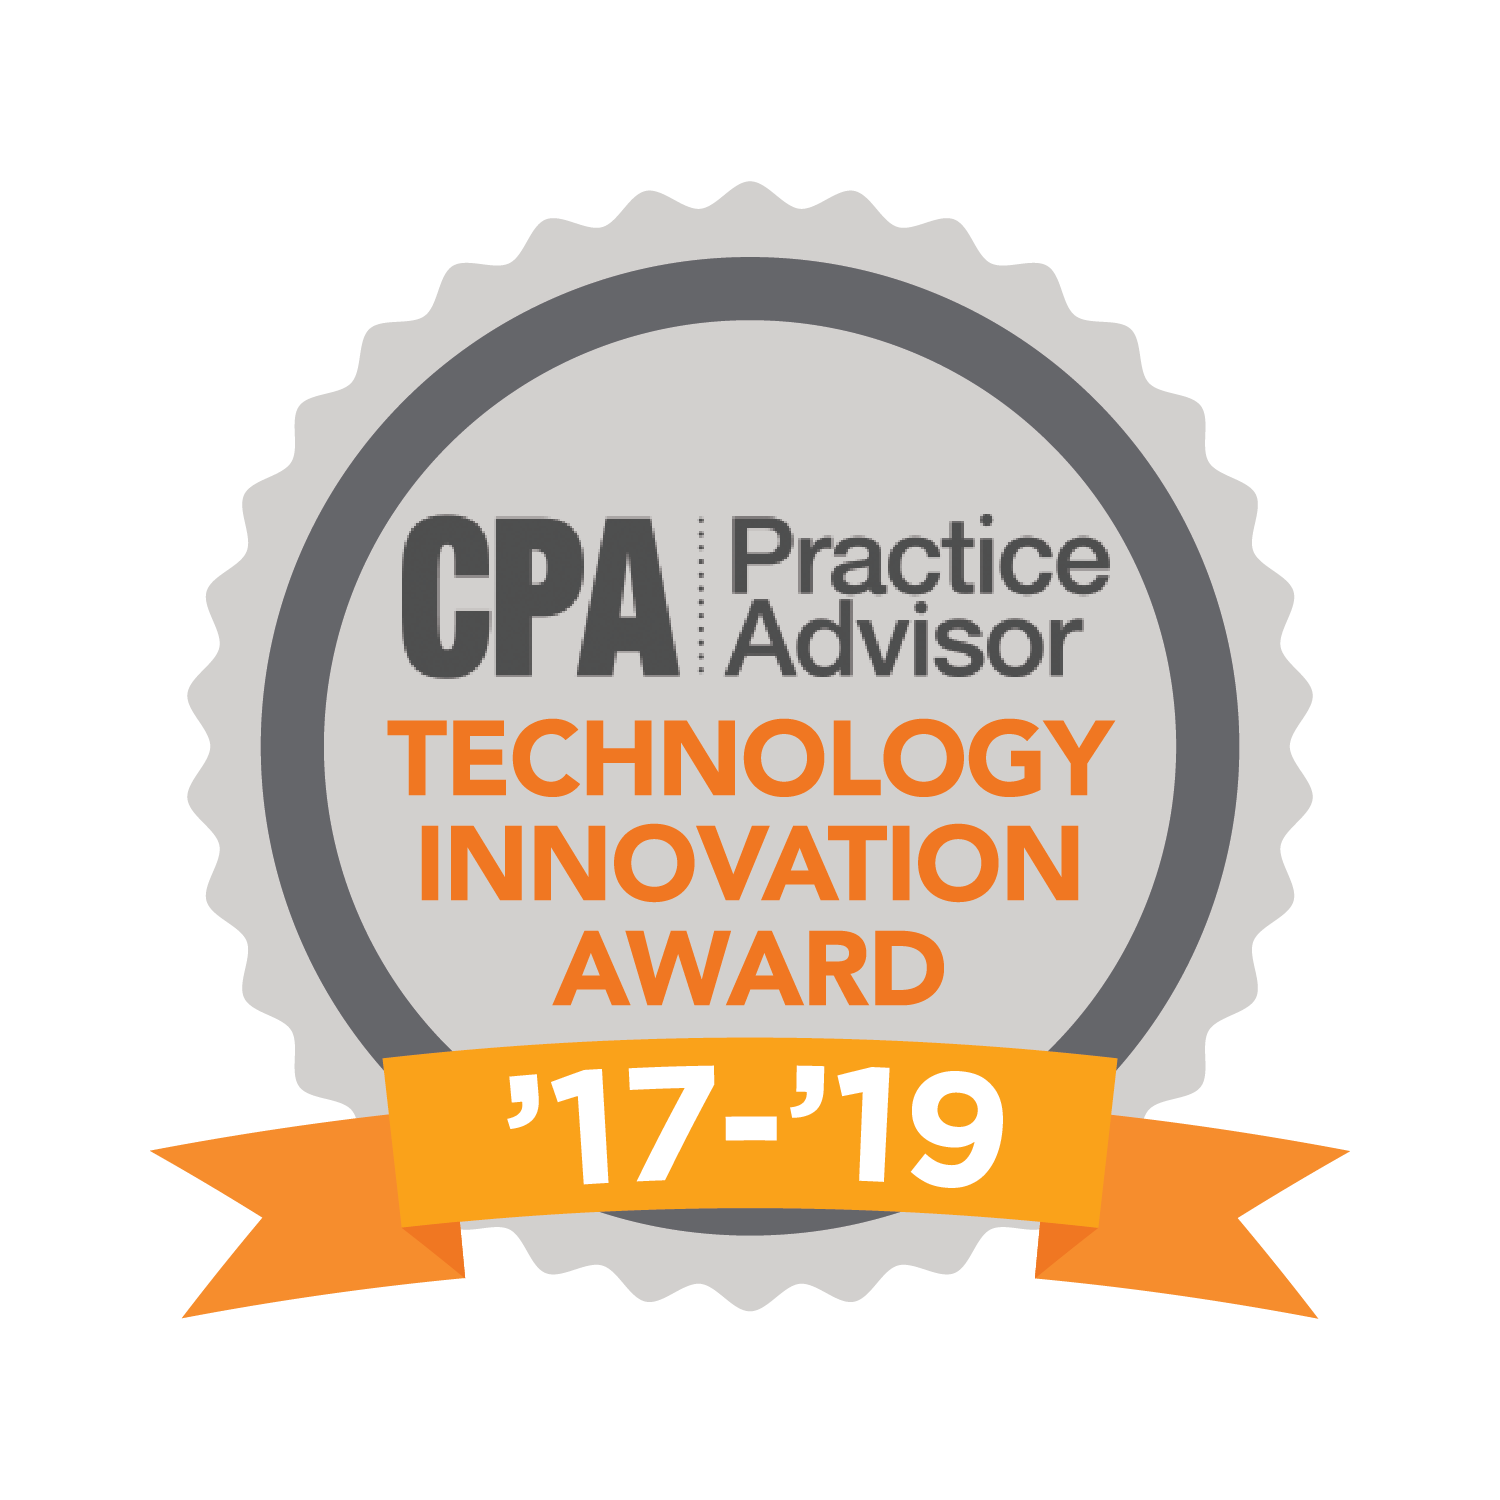 CPA Practice Advisor Technology Innovation Award for 2017